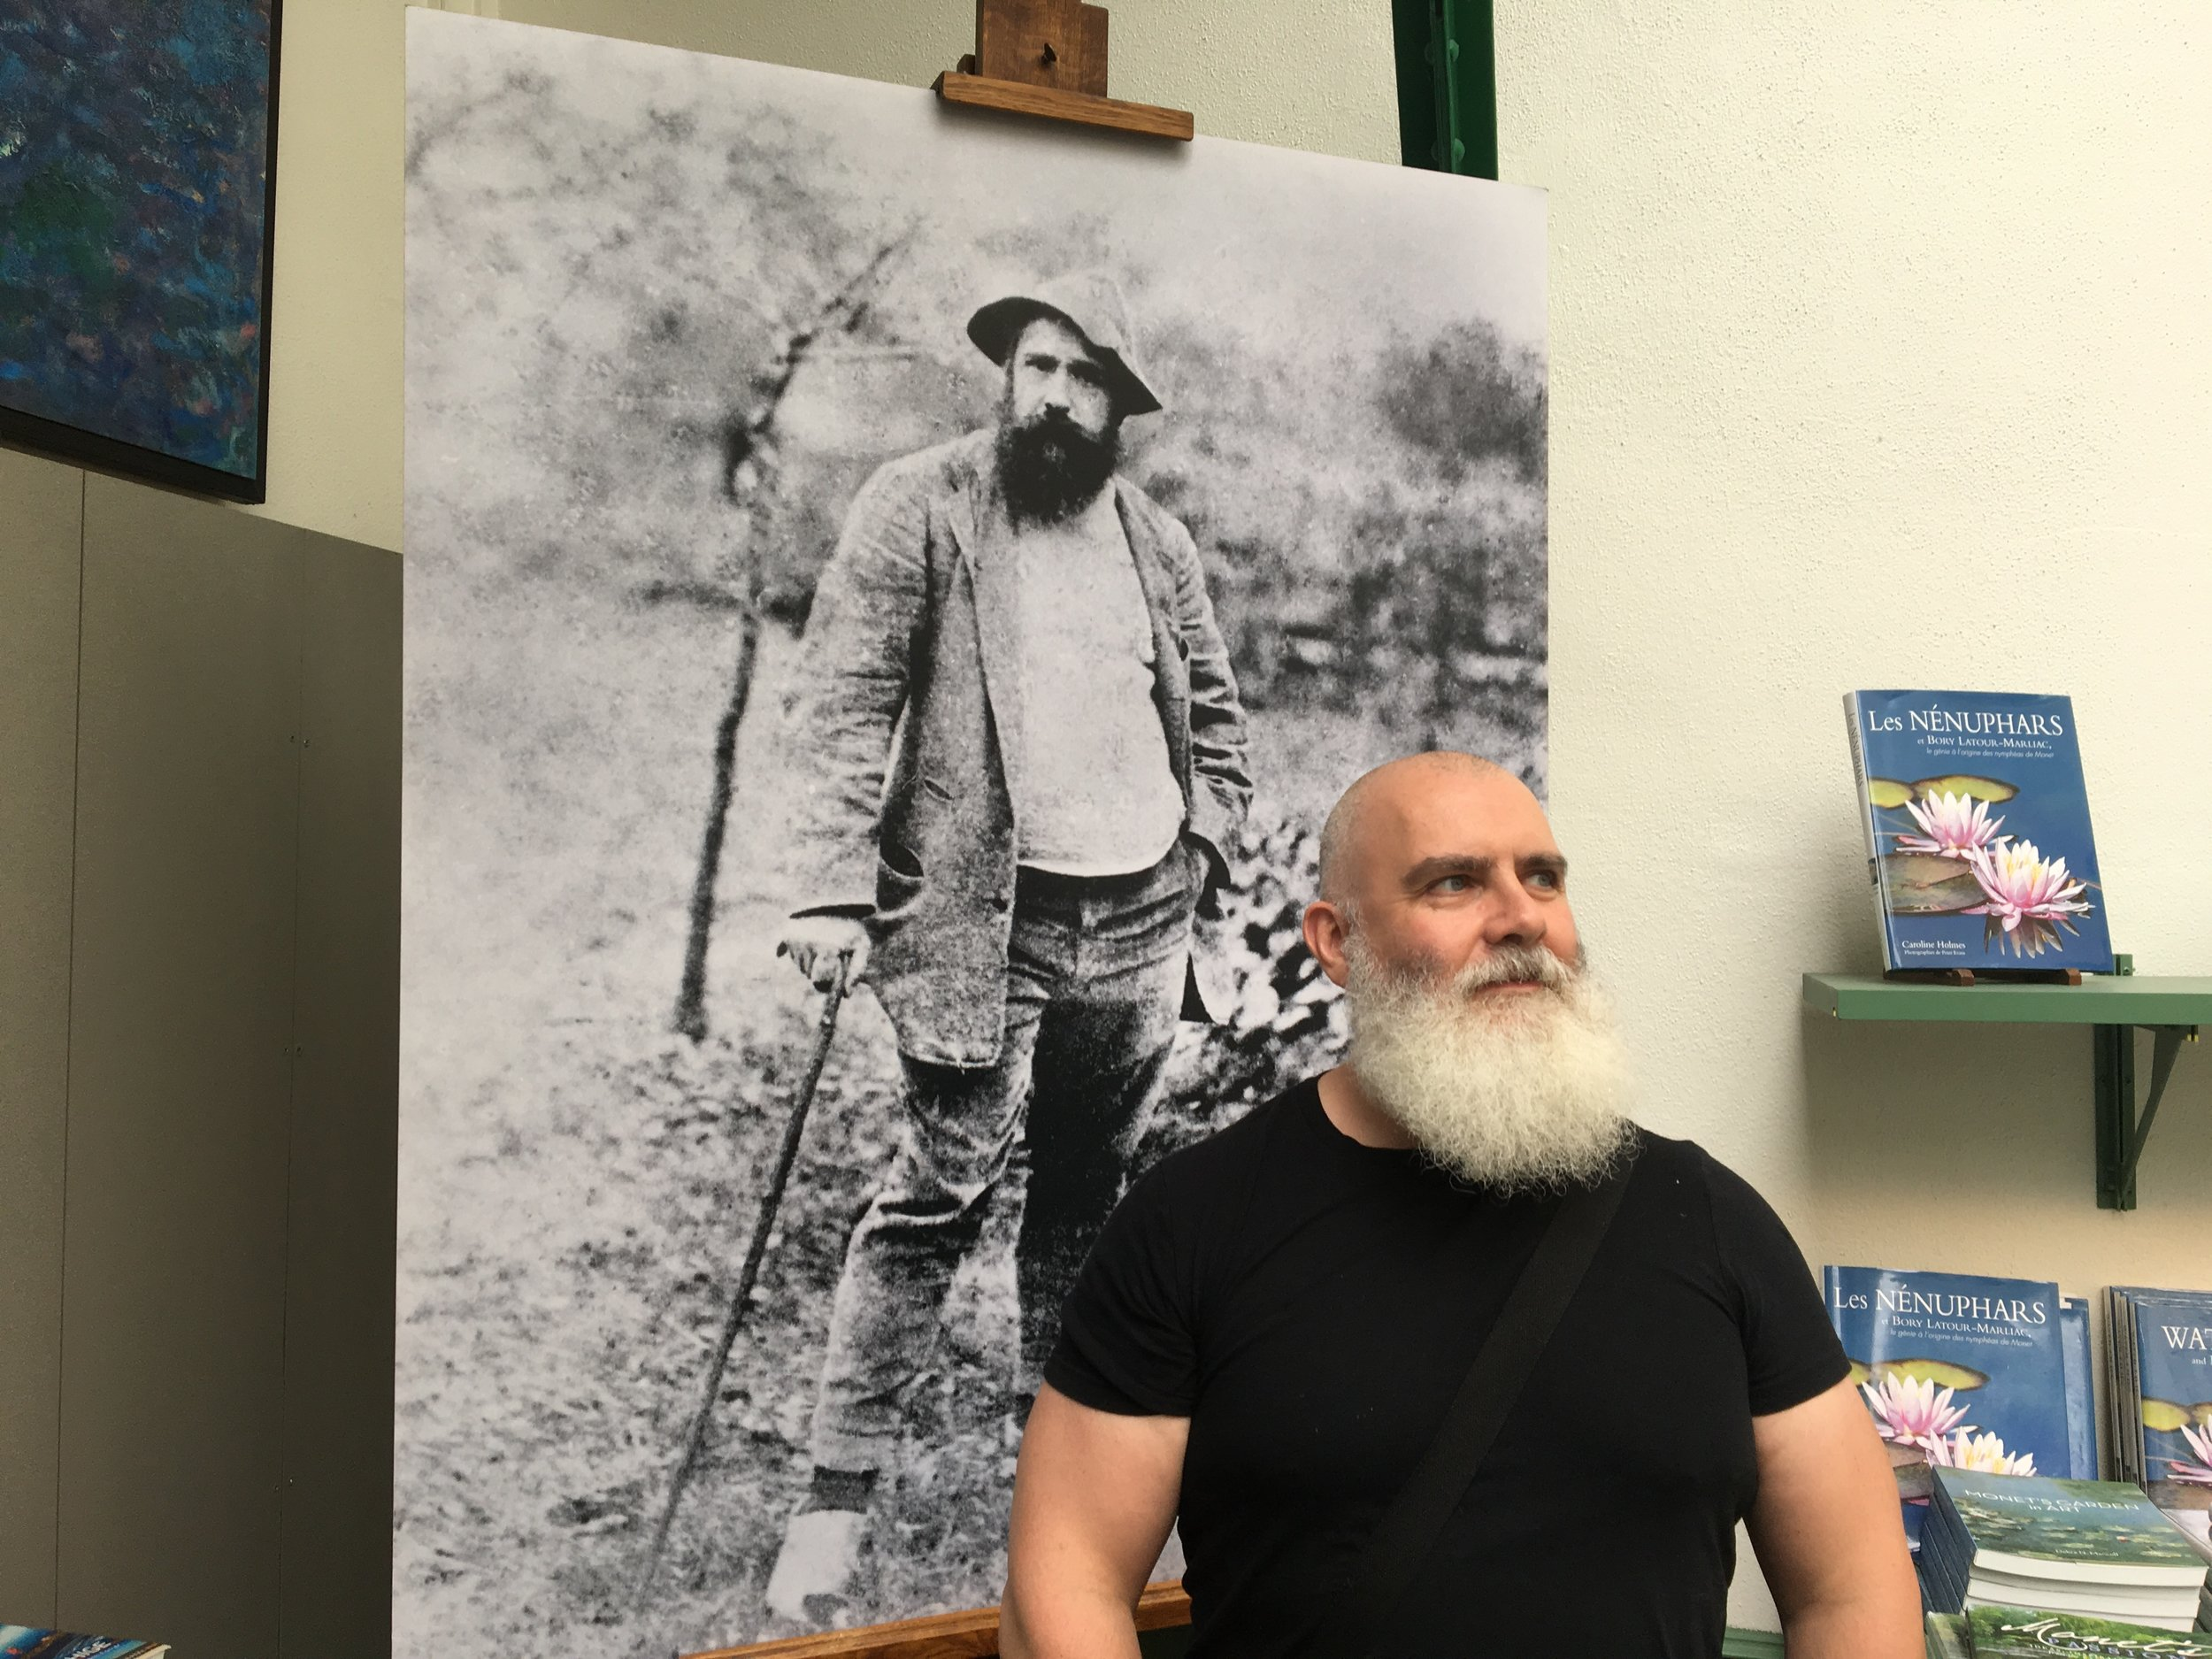 Actually, Chico looks more like the older Monet, but, still...you get the idea.